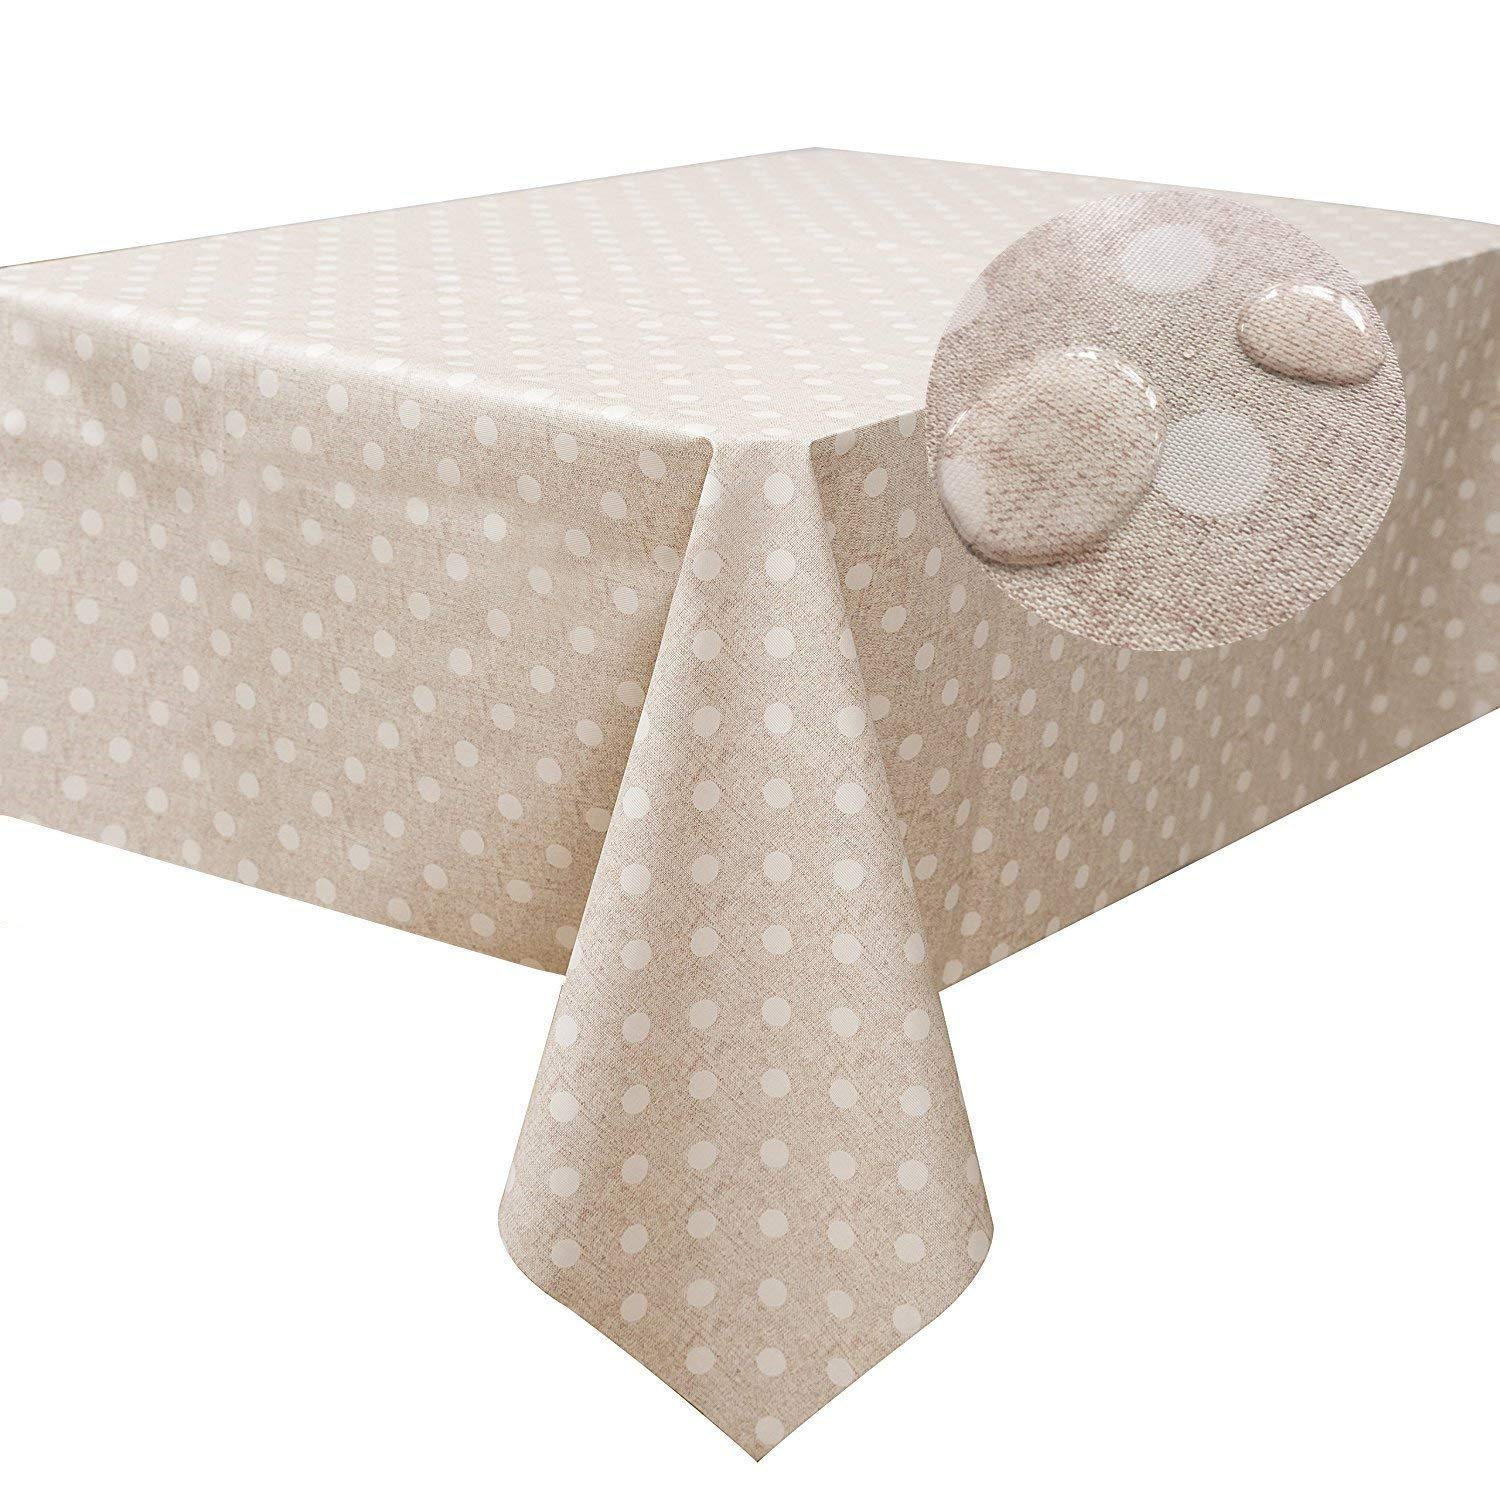 LEEVAN Heavy Weight Vinyl Square Table Cover Wipe Clean PVC Tablecloth Oil-Proof/Waterproof Stain-Resistant-54 x 54 Inch (Polka Dot)